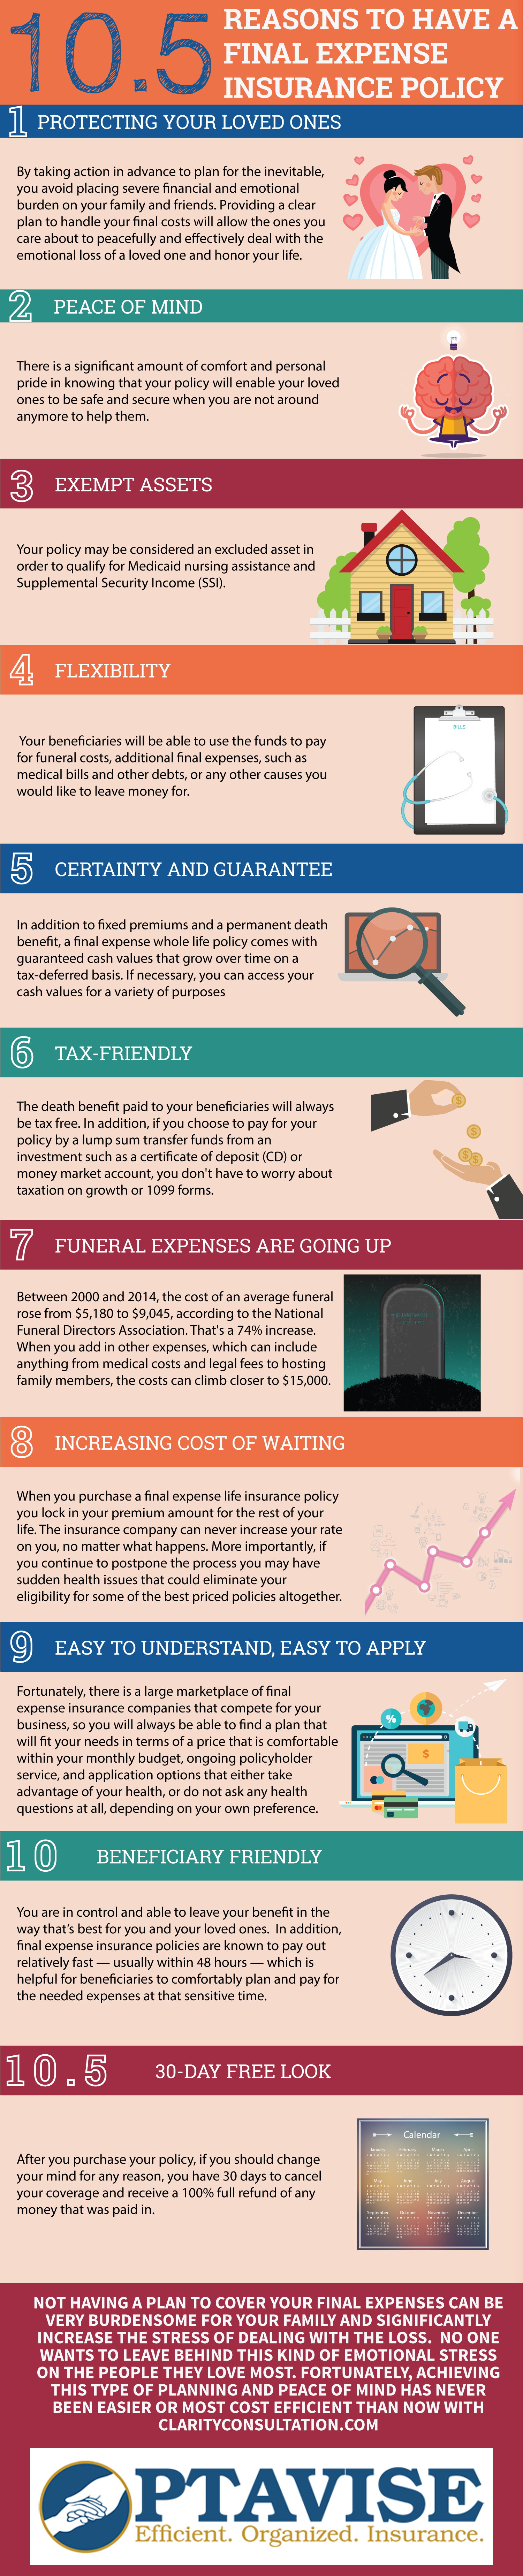 10.5 Reasons to Have a Final Expense Plan